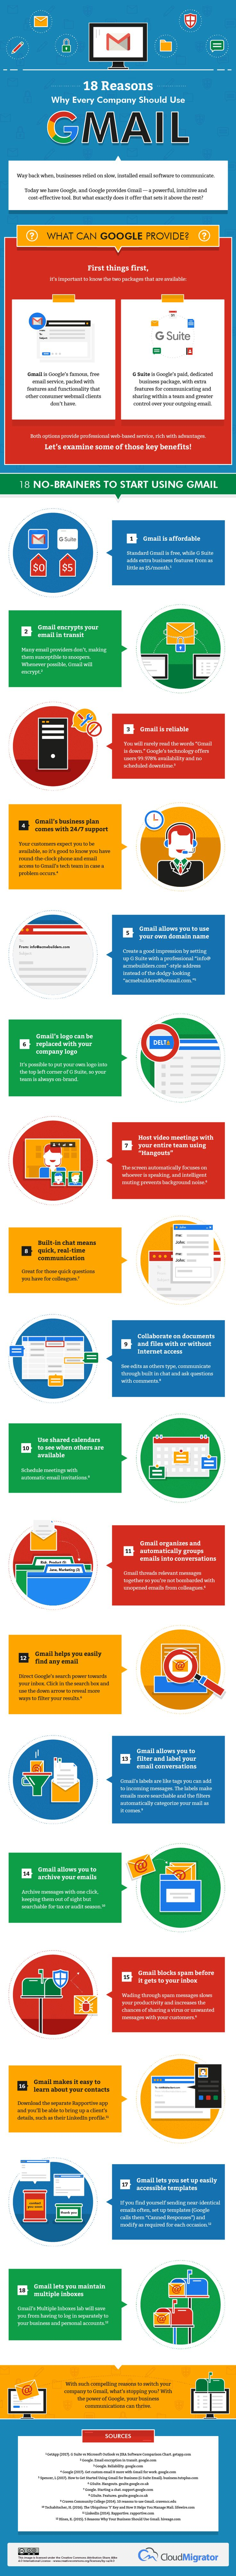 18 reasons why every company should use Gmail - infographic